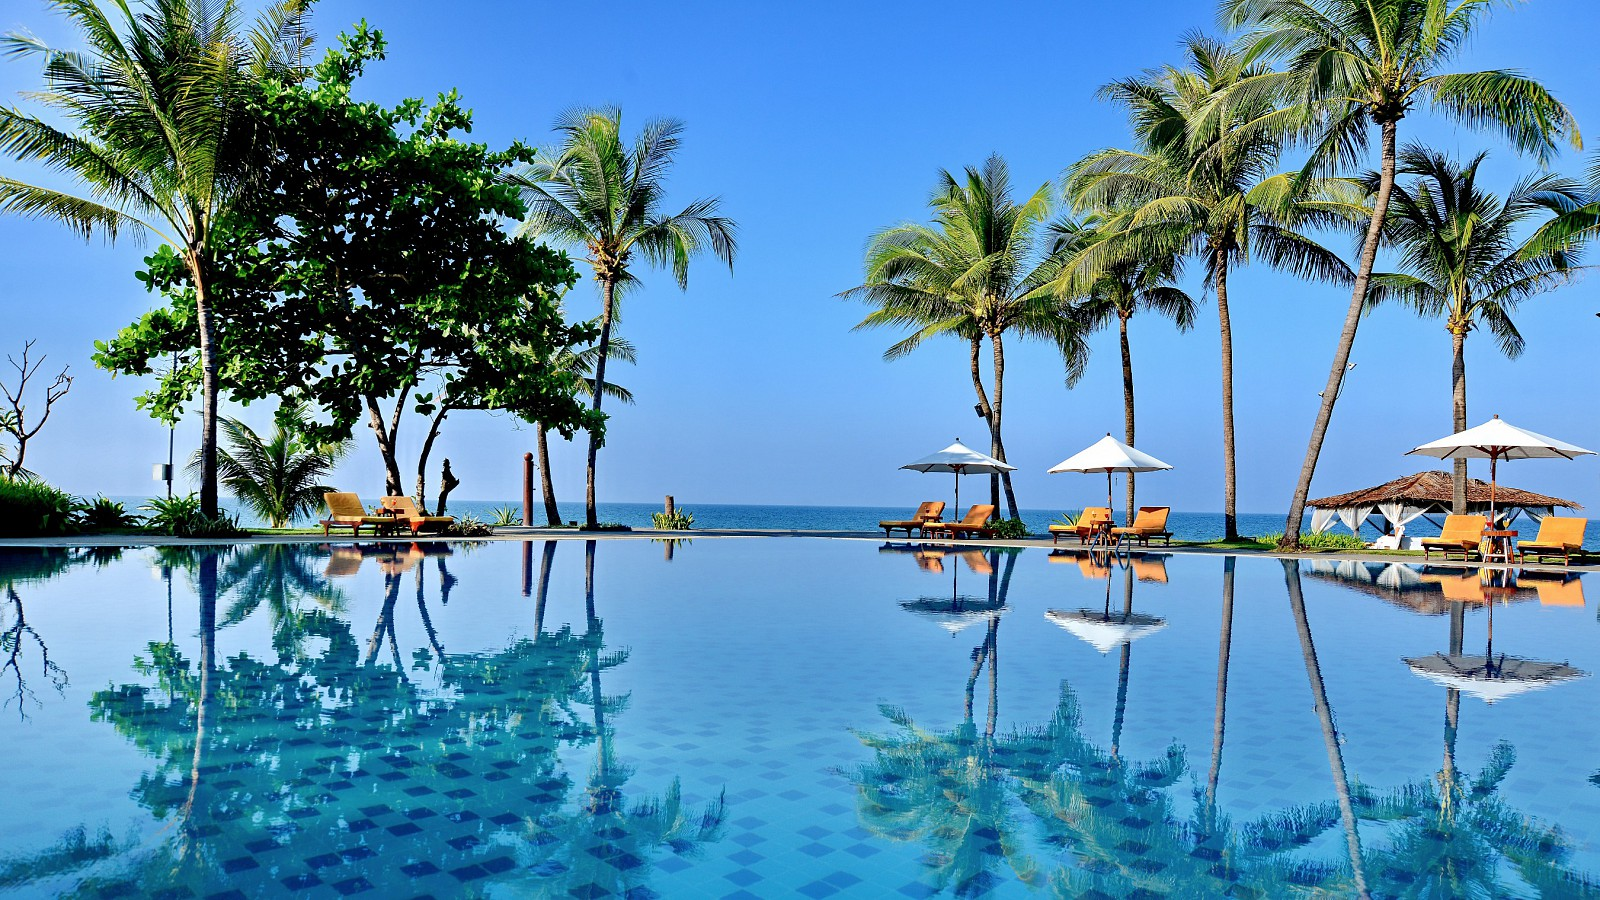 Aureum palace hotel ngwe saung, Hotels in ngwe saung, Htoo Hospitality